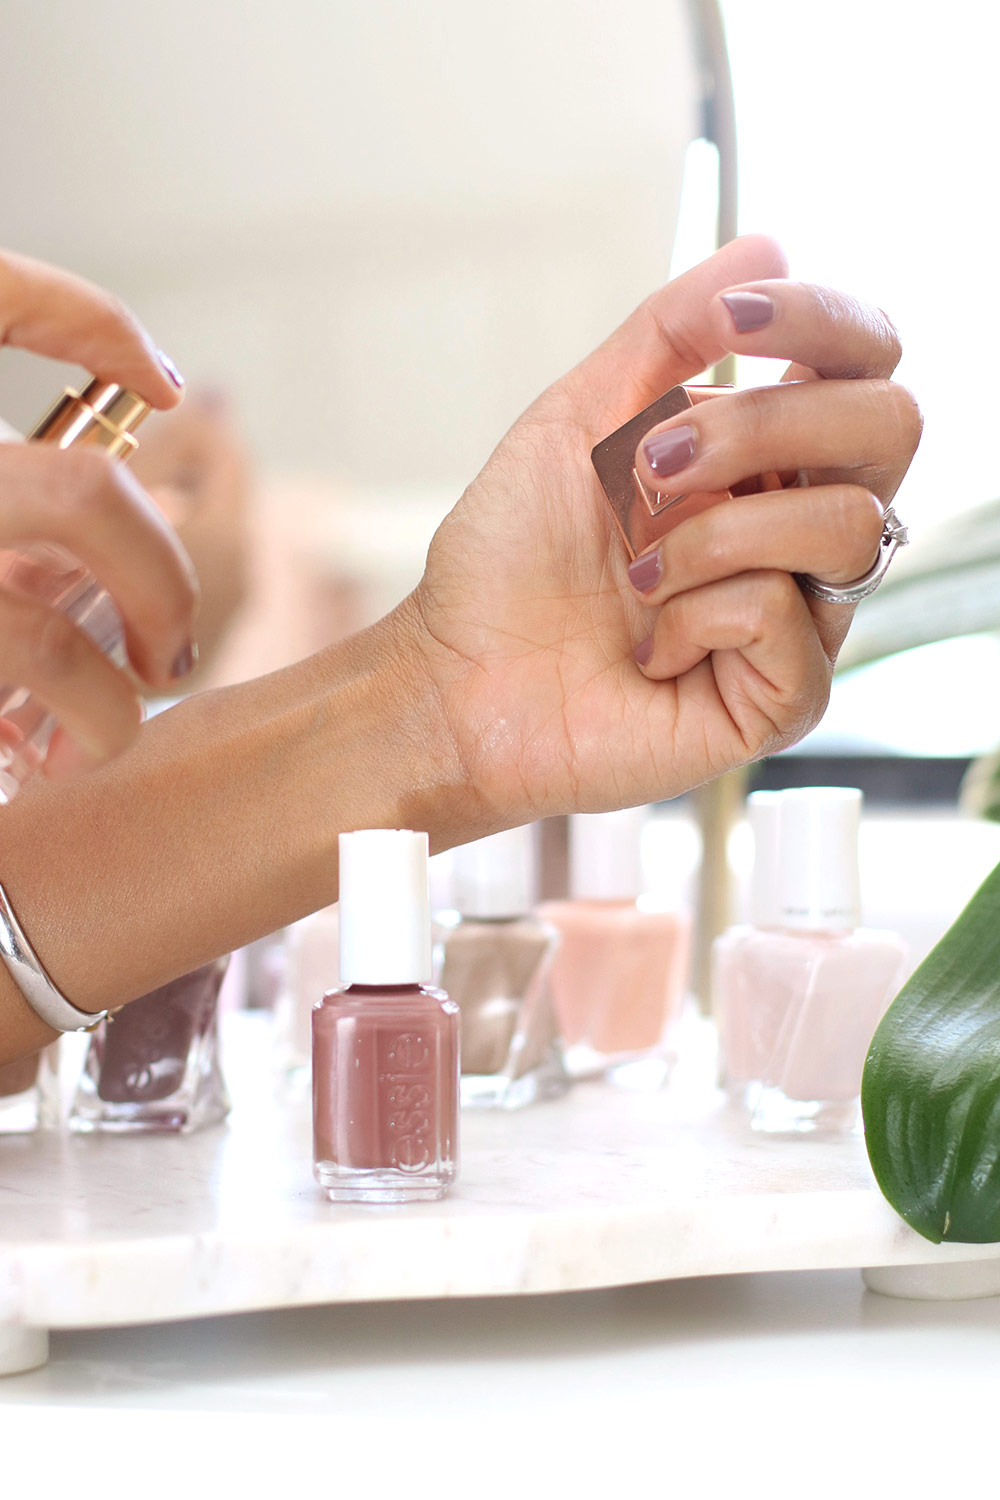 Unsung Makeup Heroes: Essie Clothing Optional